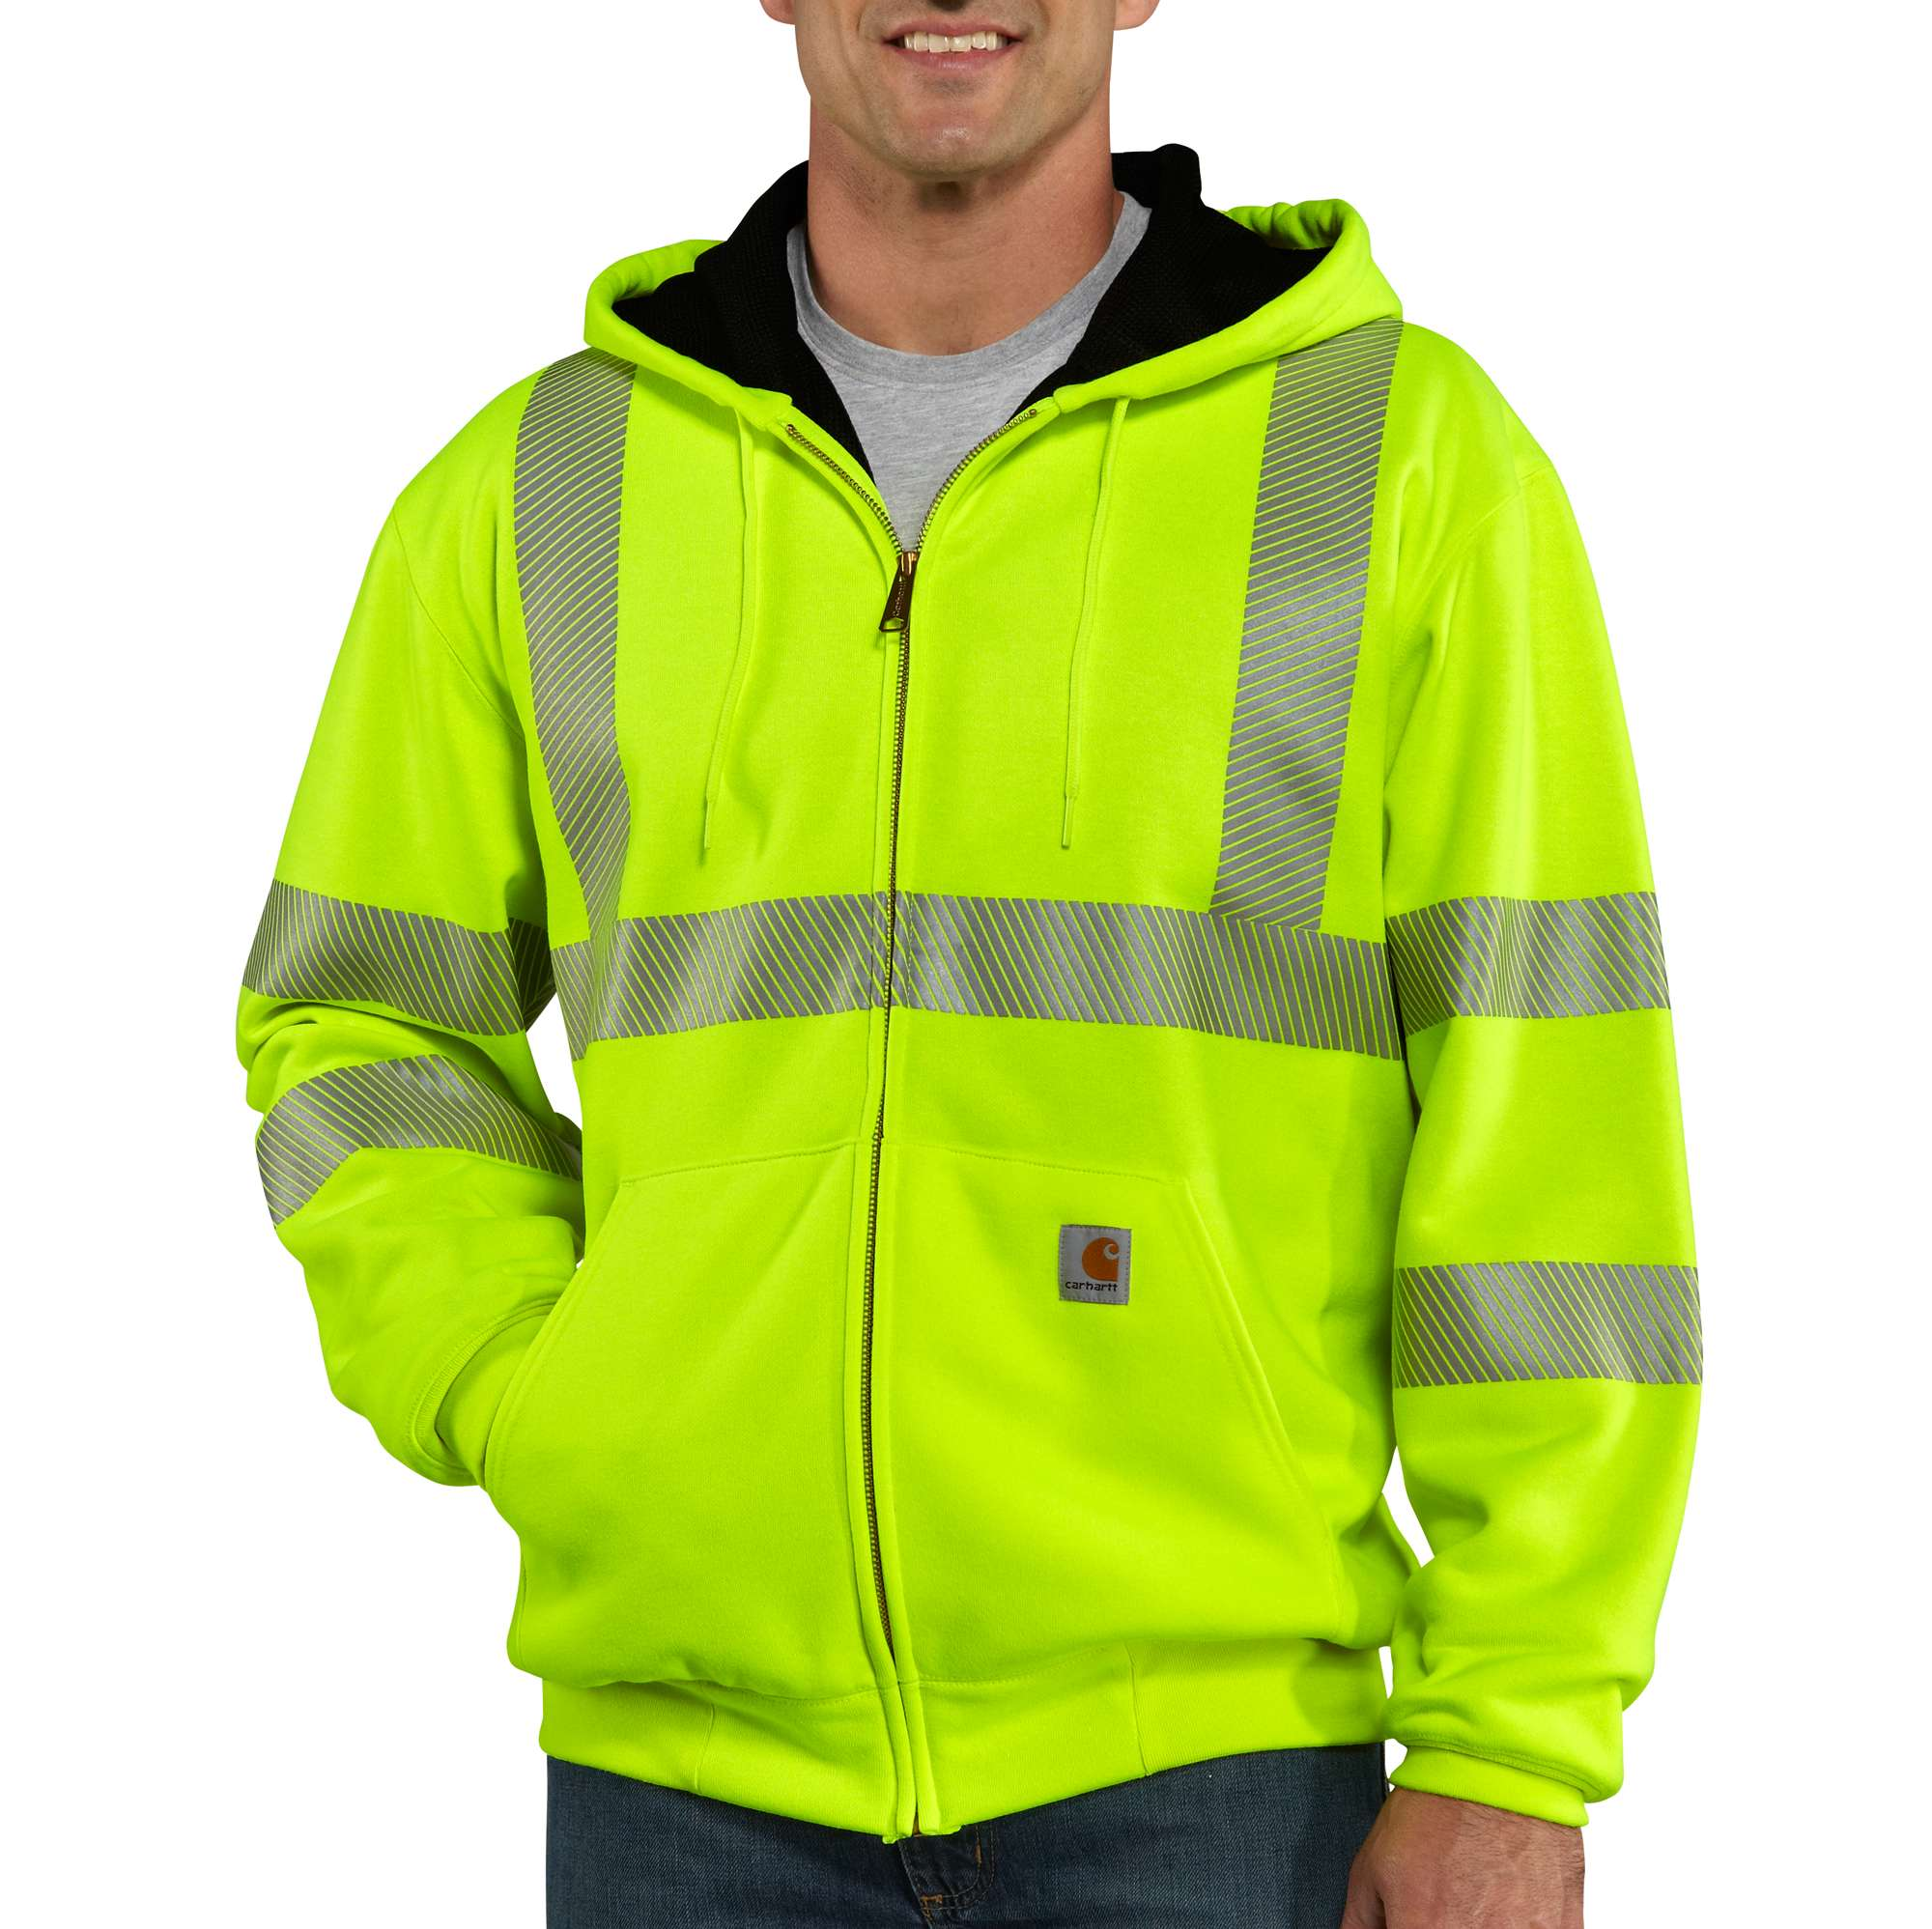 Carhartt High-Visibility Zip-Front Class 3 Thermal-Lined Sweatshirt